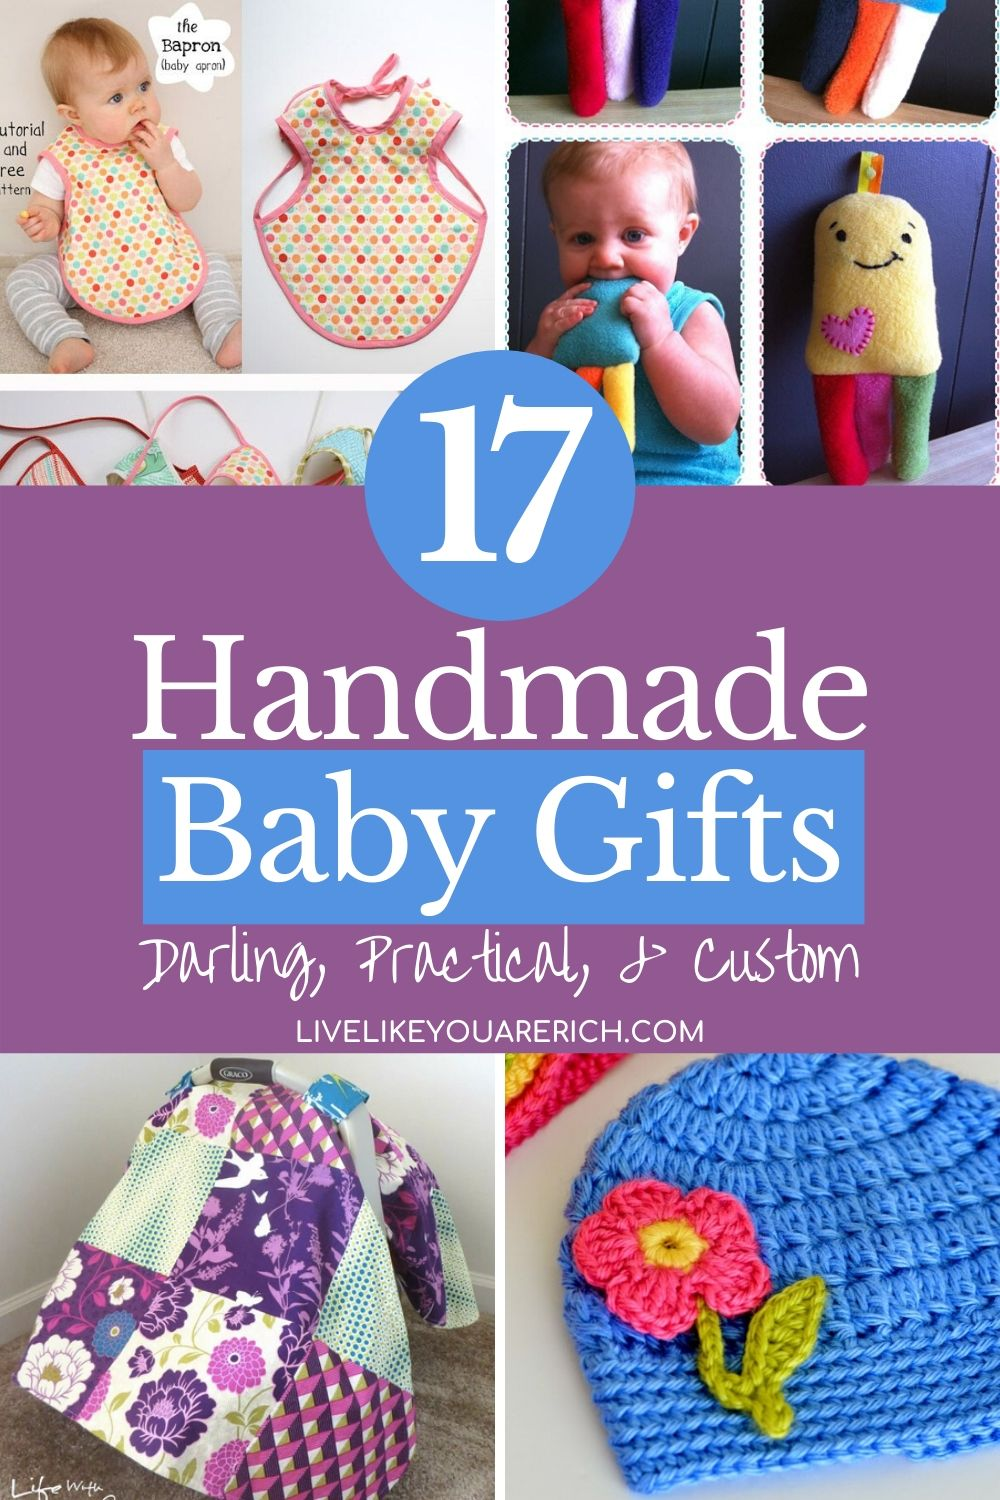 There are so many fun ways to celebrate the upcoming arrival of a baby. Making custom gifts is one of them. Sharing these 17 great handmade baby items/gifts that can show your excitement for a new baby.